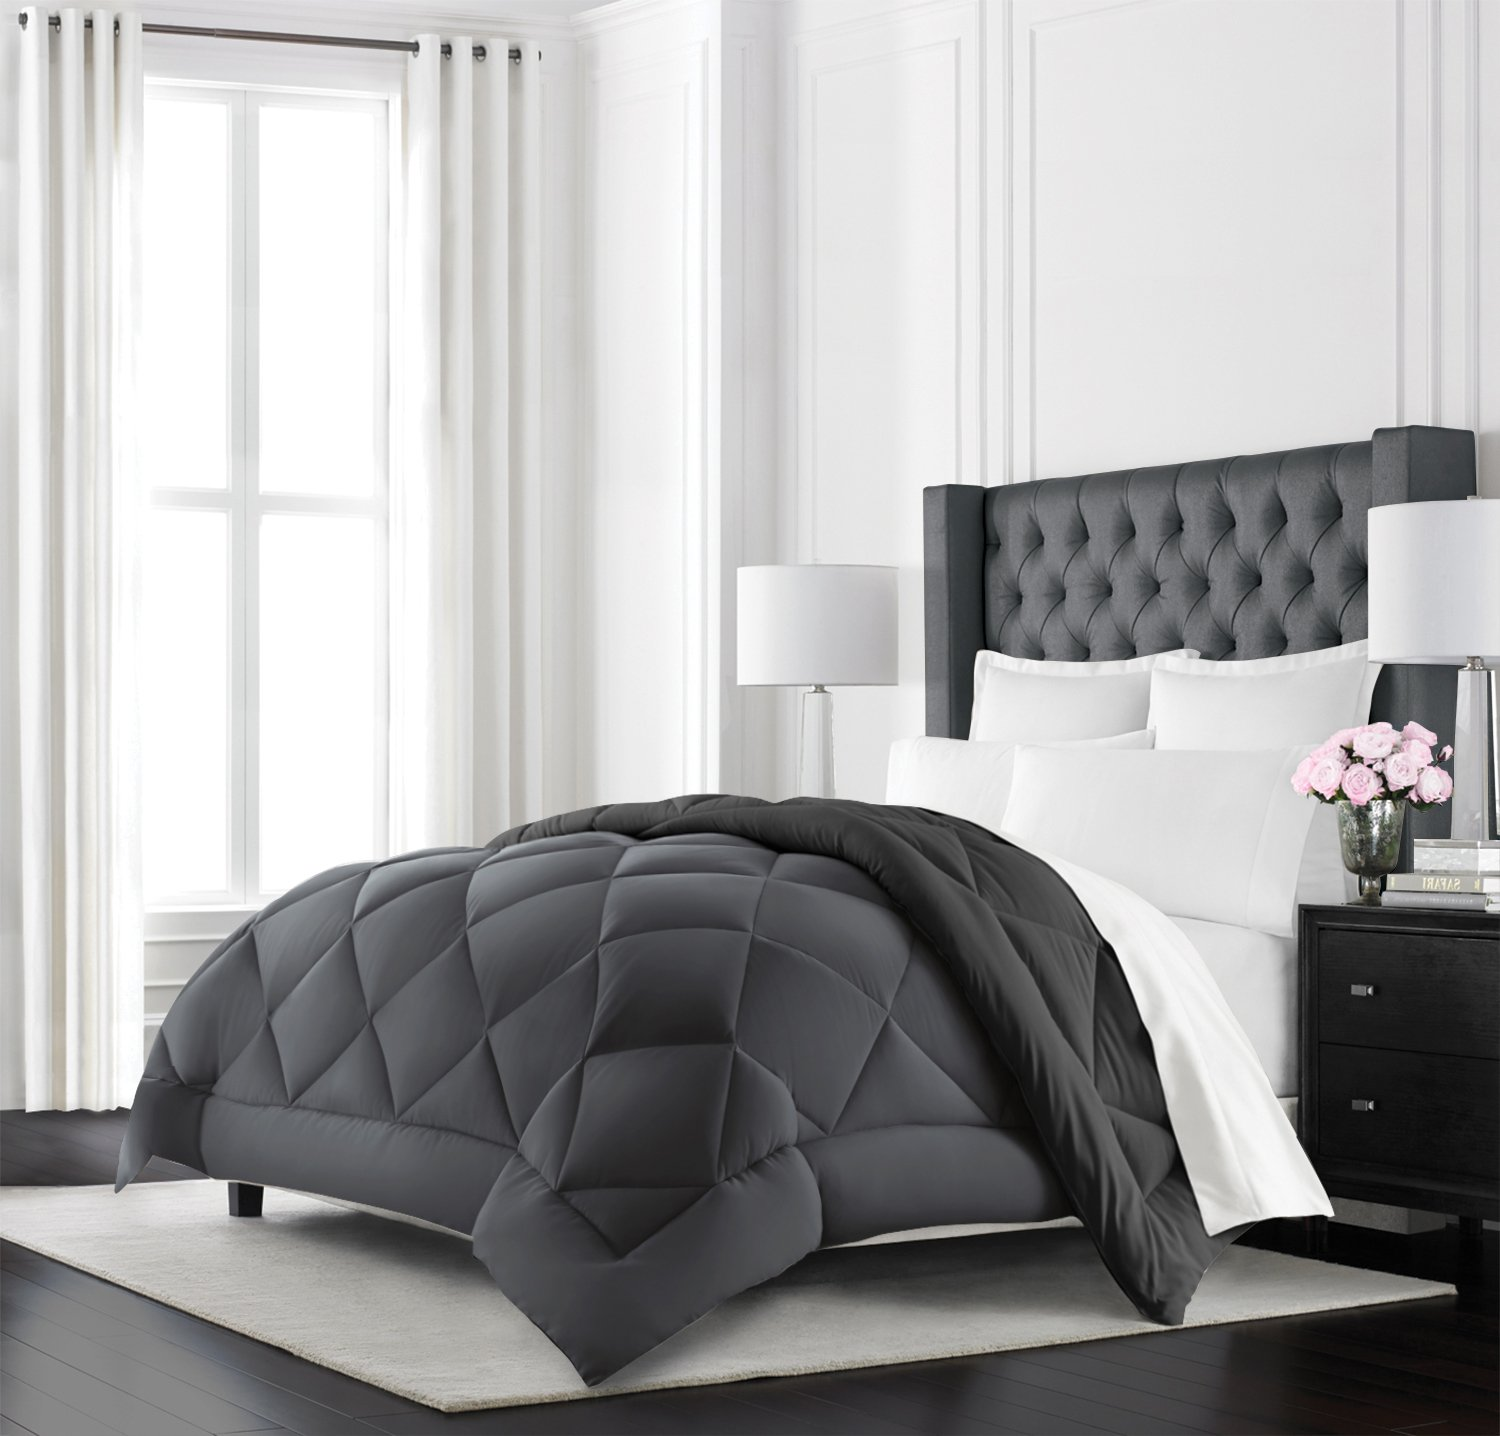 Beckham Hotel Collection Goose Down Alternative Reversible Comforter - All Season - Premium Quality Luxury Hypoallergenic Comforter - Full/Queen - Grey/Black